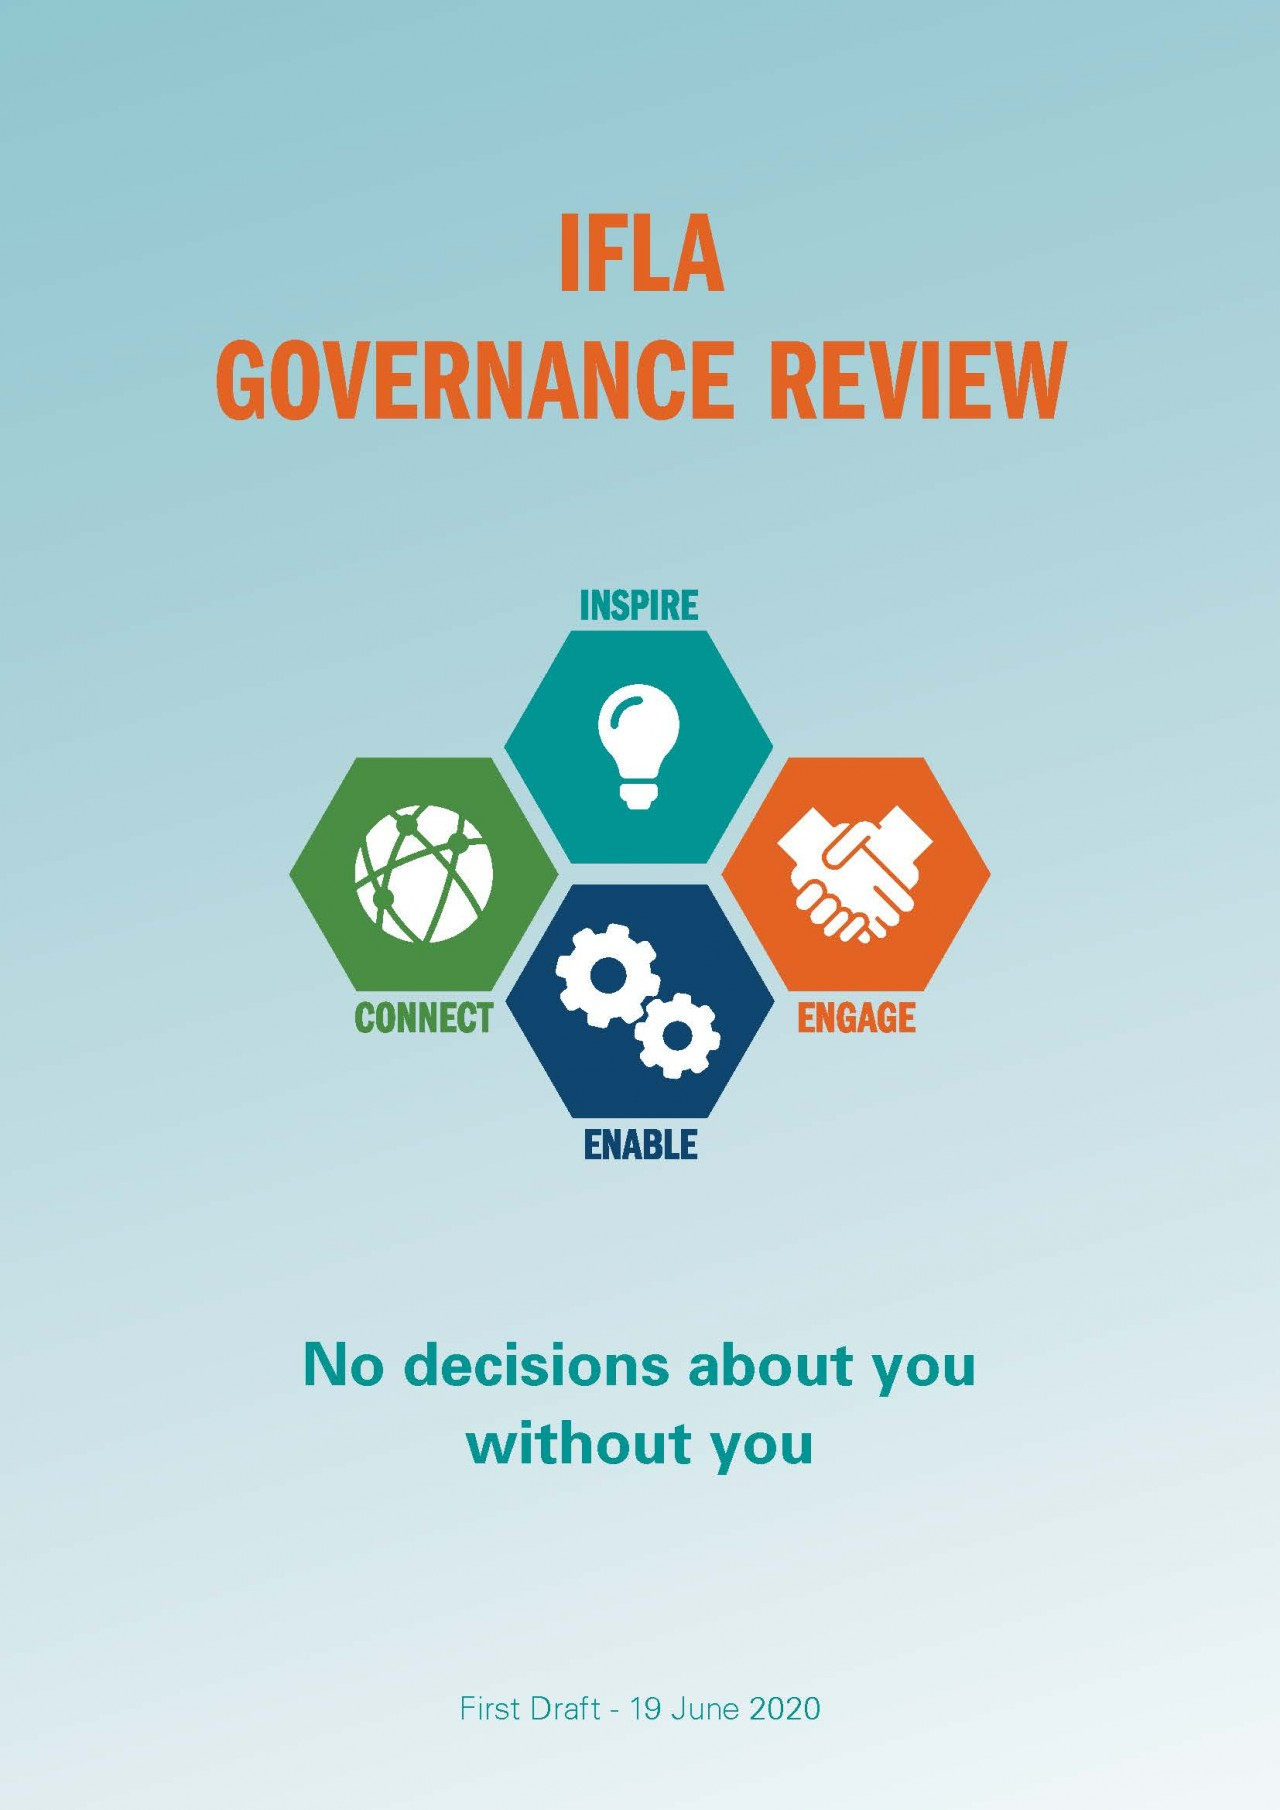 IFLA Governance Review